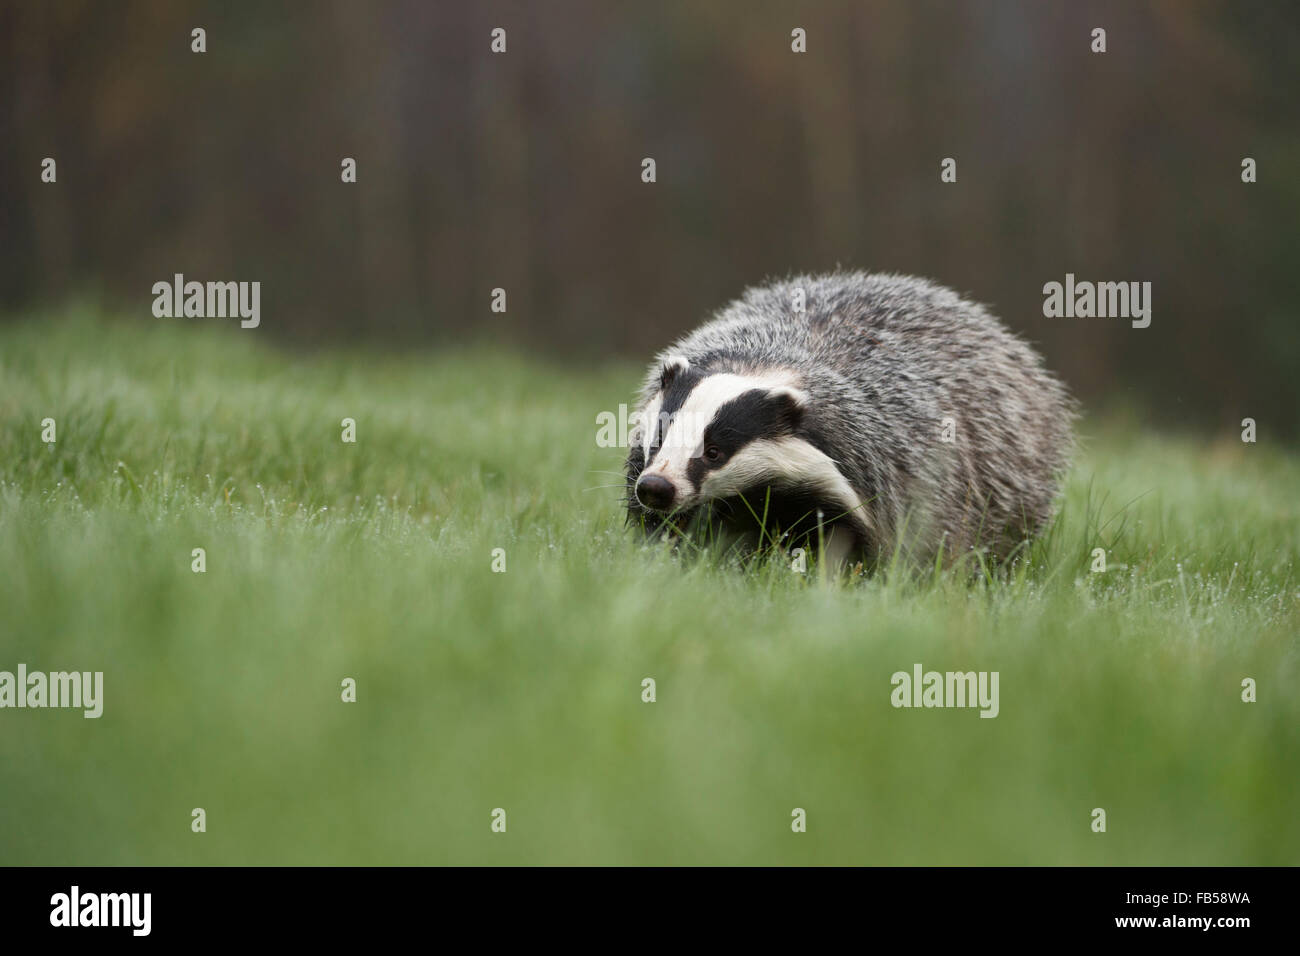 European Badger /  Europaeischer Dachs ( Meles meles ) walks over a dew wet pasture, low point of view. - Stock Image